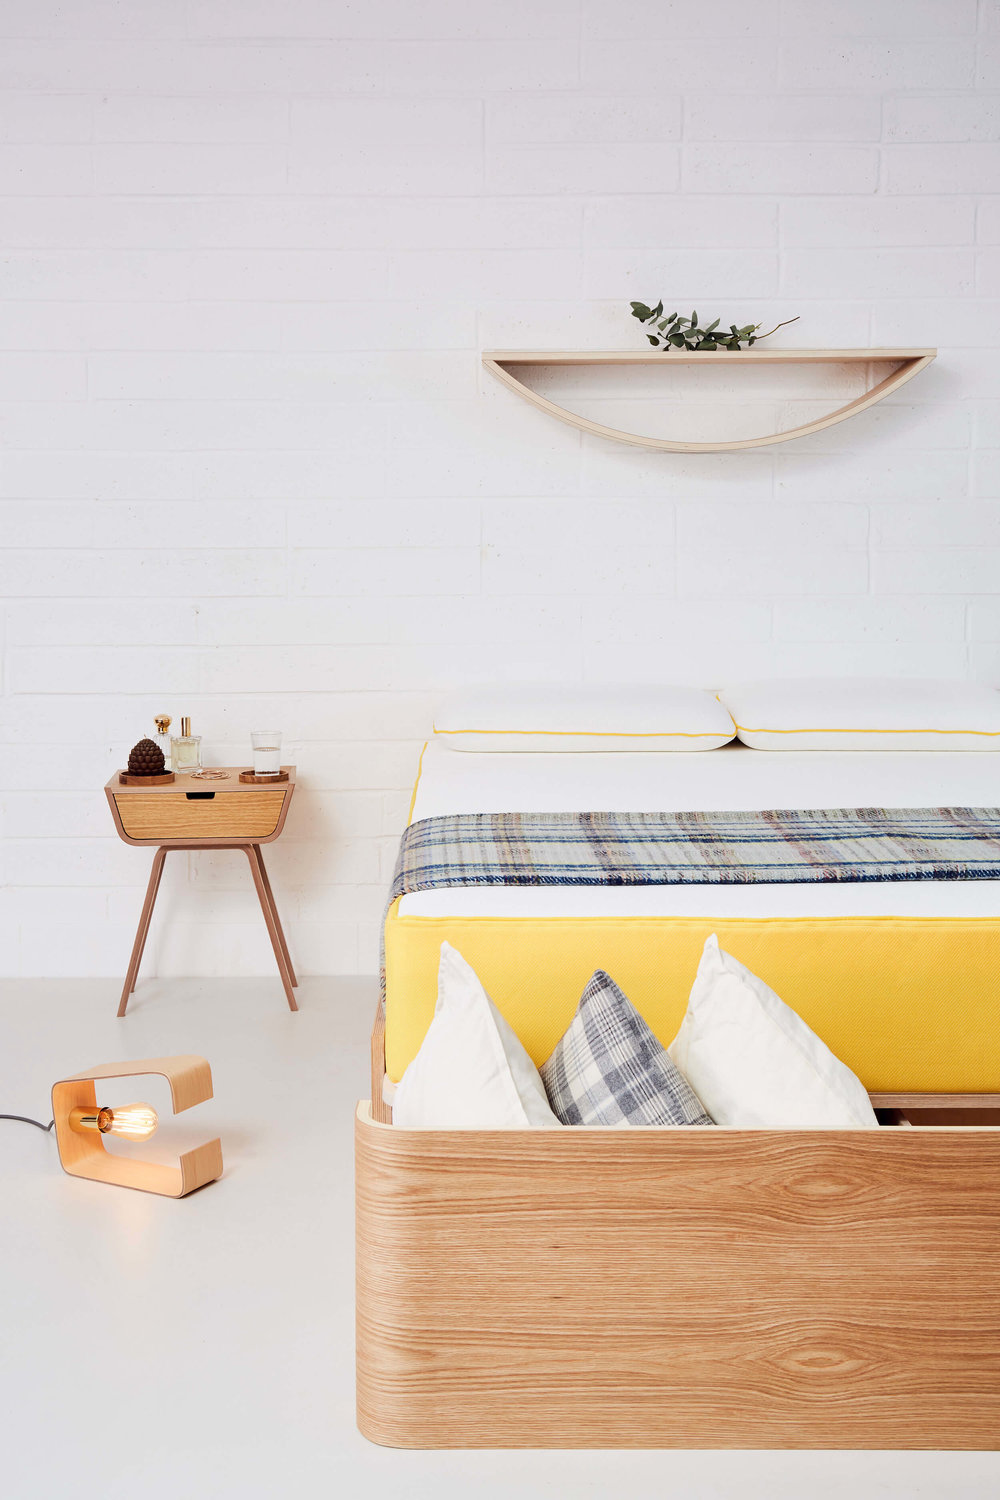 Lozi's new plywood bedframe and bedside table